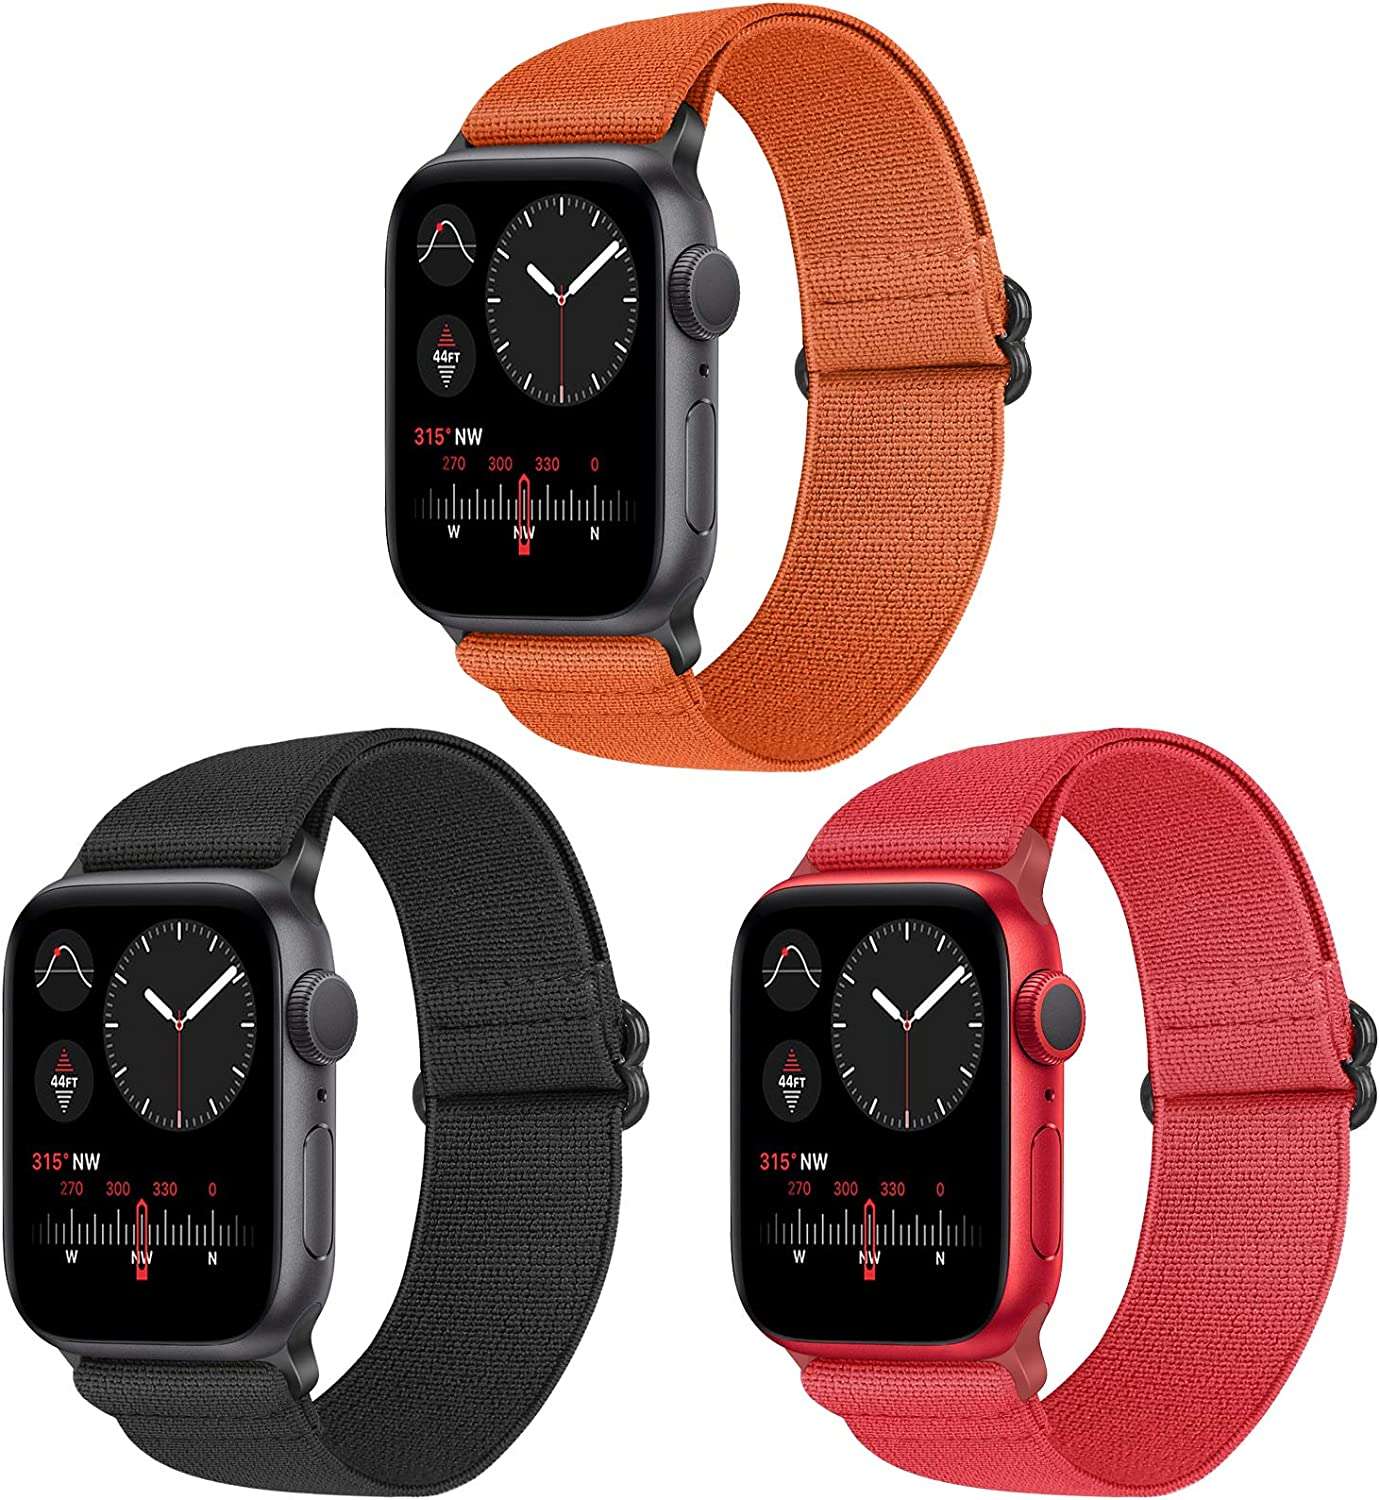 Vodtian Nylon Loop Elastic Watch Band Compatible with Apple Watch 38mm 40mm, Women Men Stretchy Adjustable Replacement Sport Straps for iWatch Series 6/5/4/3/2/1/SE (Black+Red+Orange, 38mm/40mm)